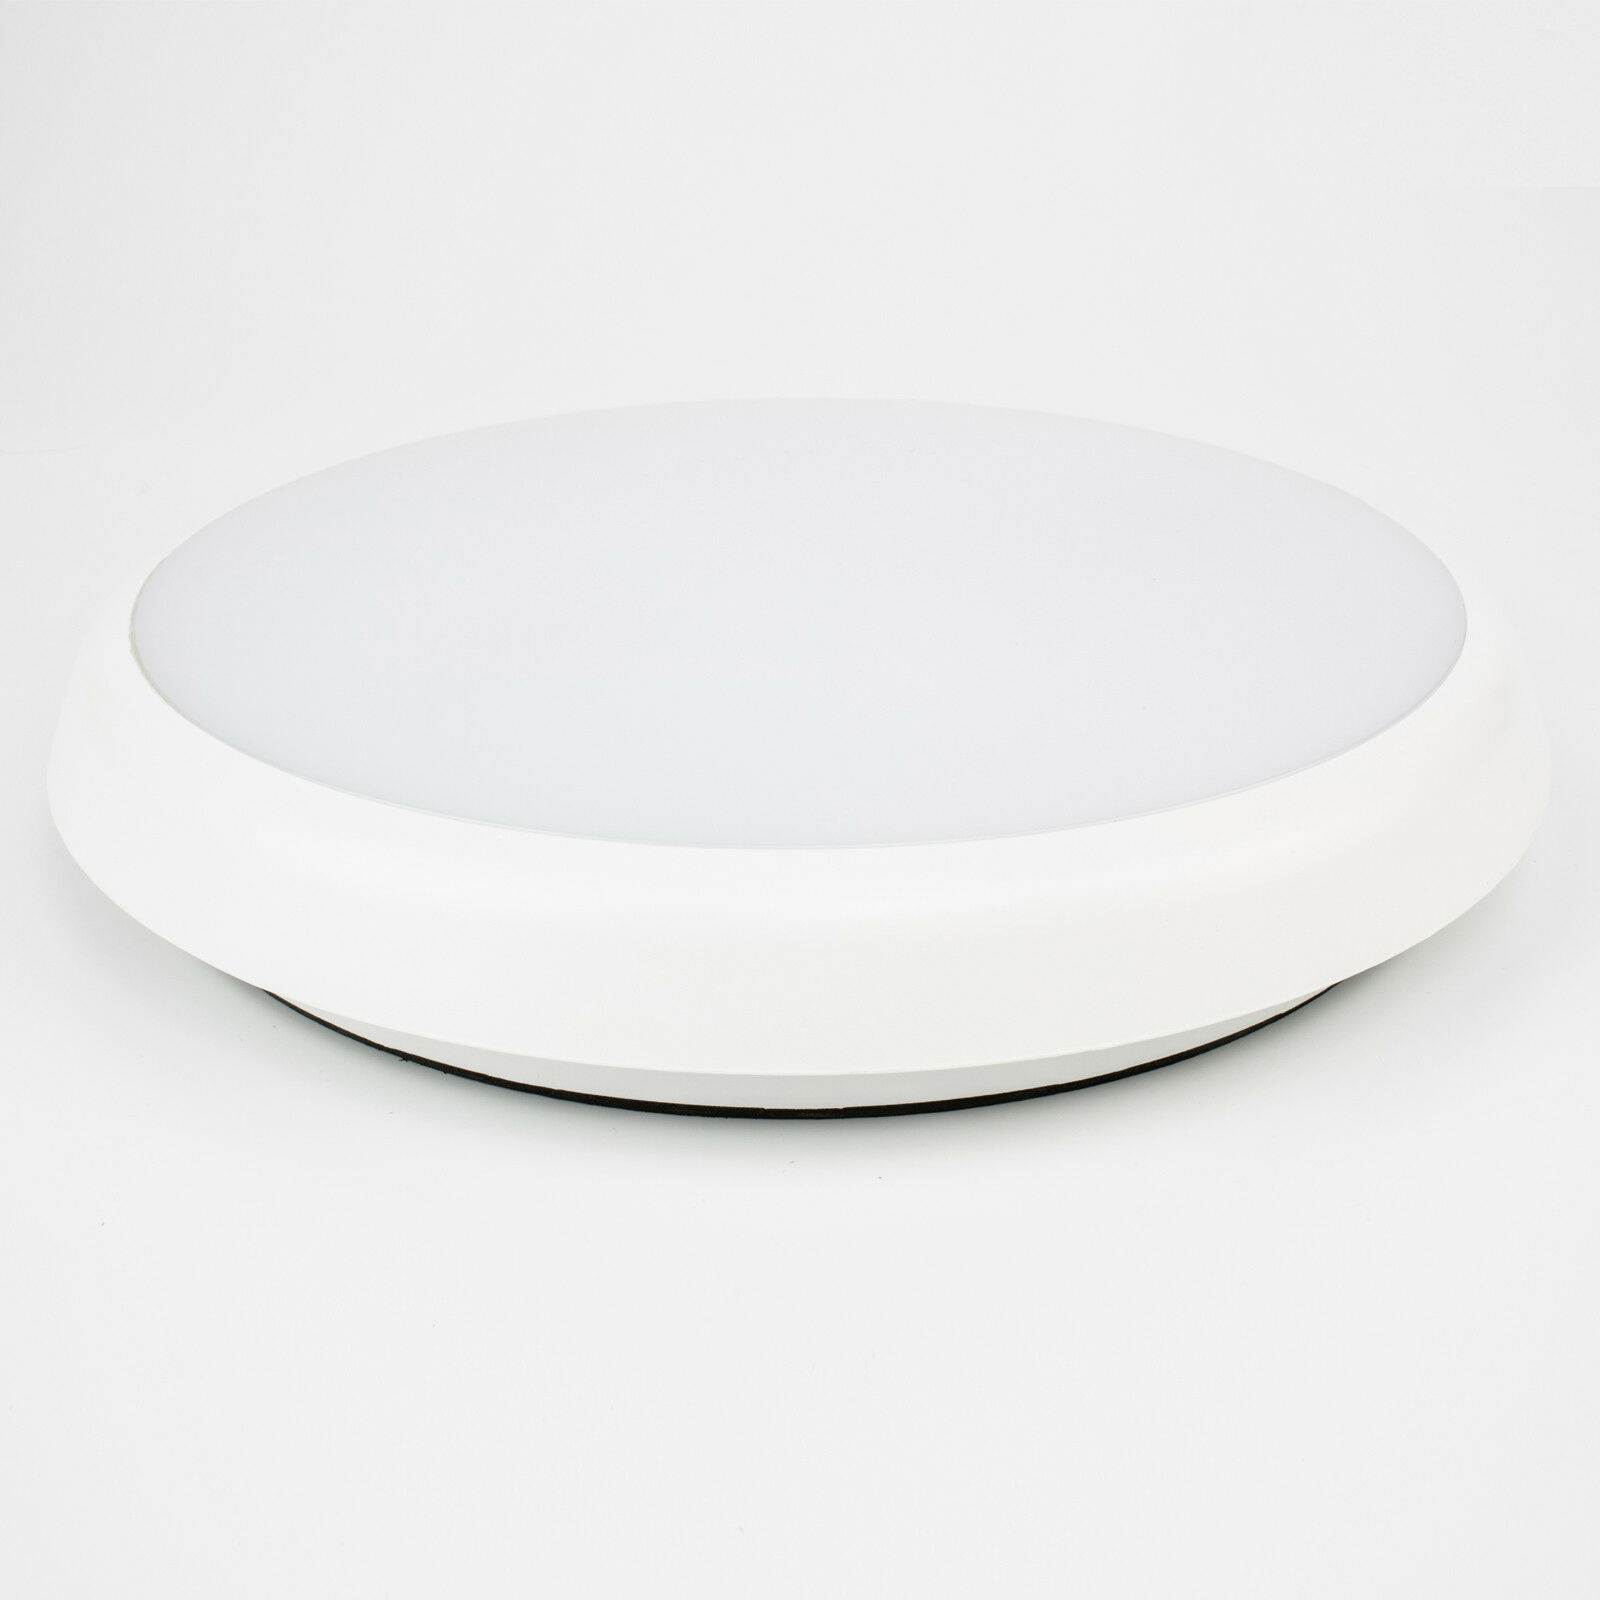 LED Ceiling Light Surface Mounted 12W IP54 Day Light with Options